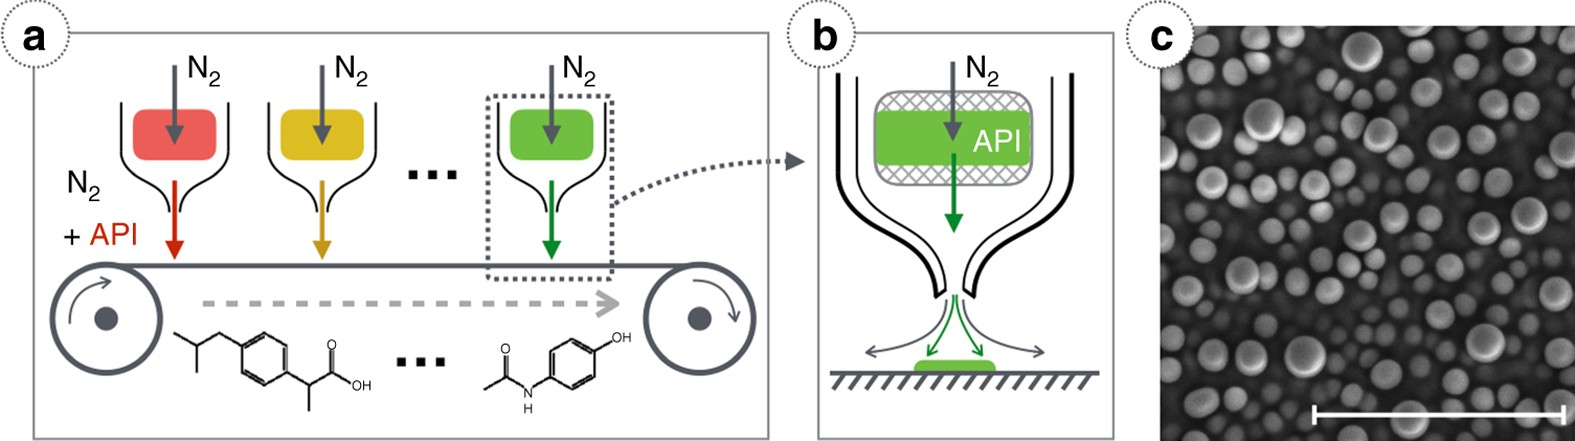 Printing of small molecular medicines from the vapor phase